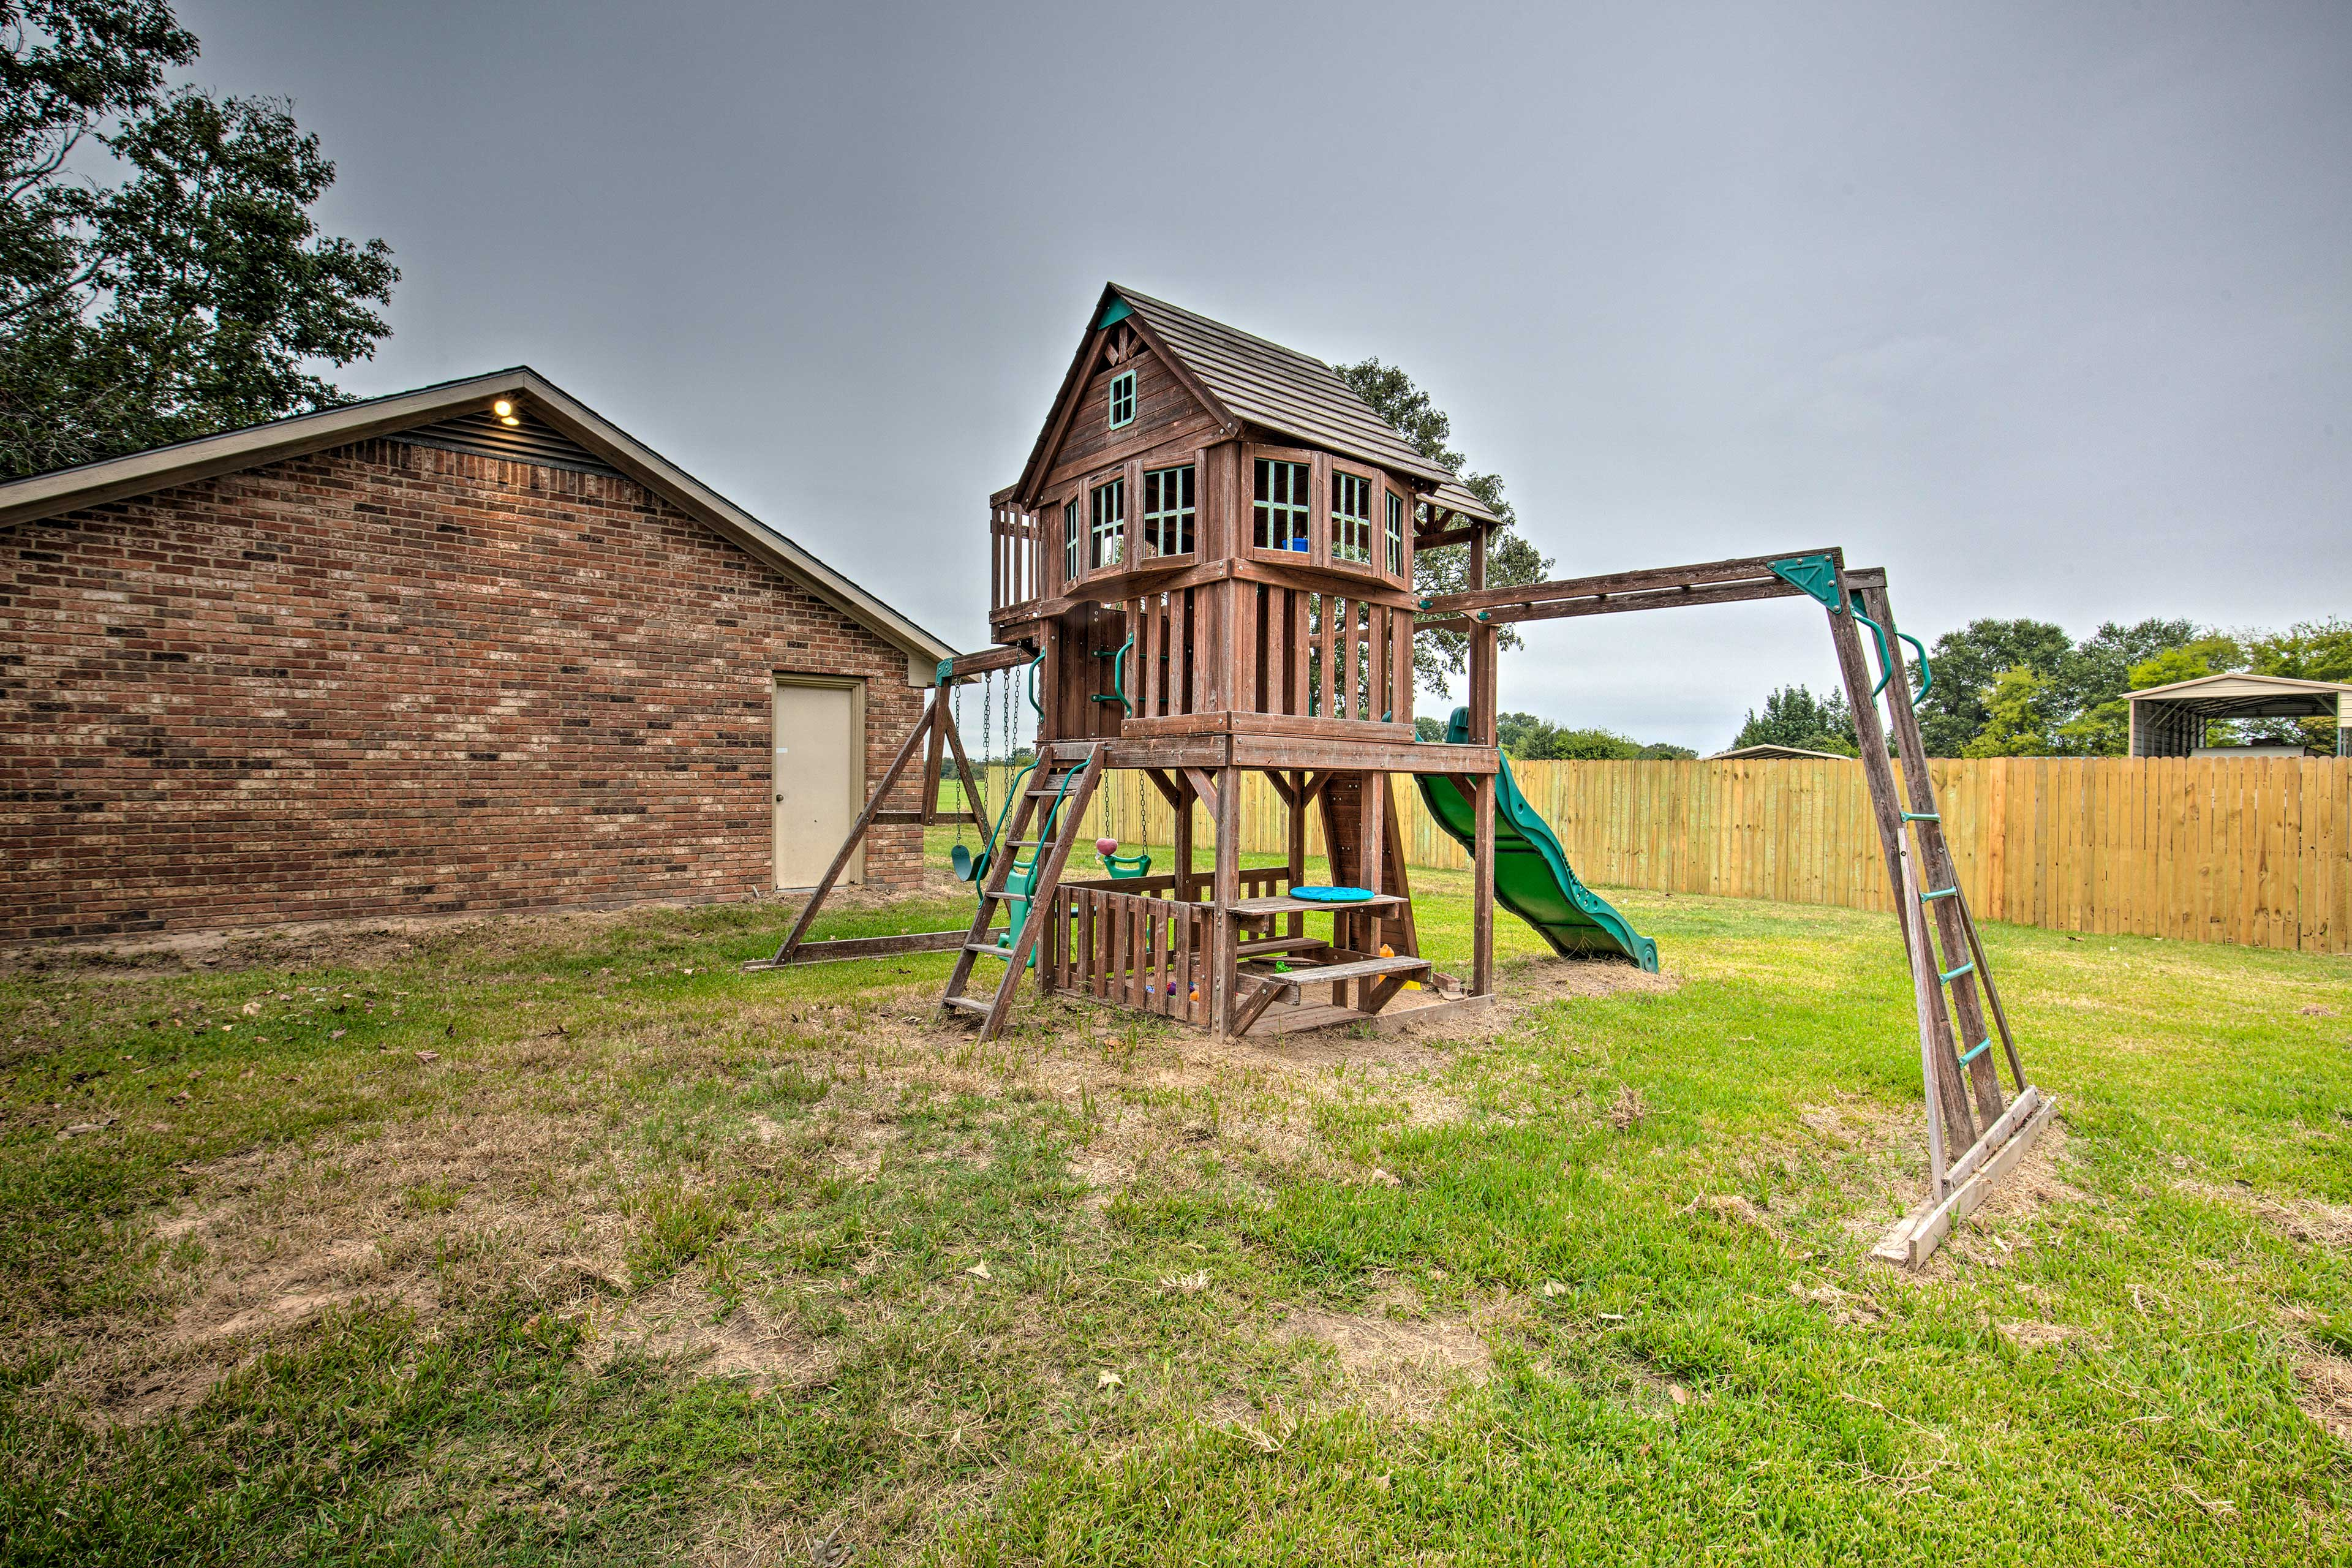 The kids will stay entertained with their very own playground!